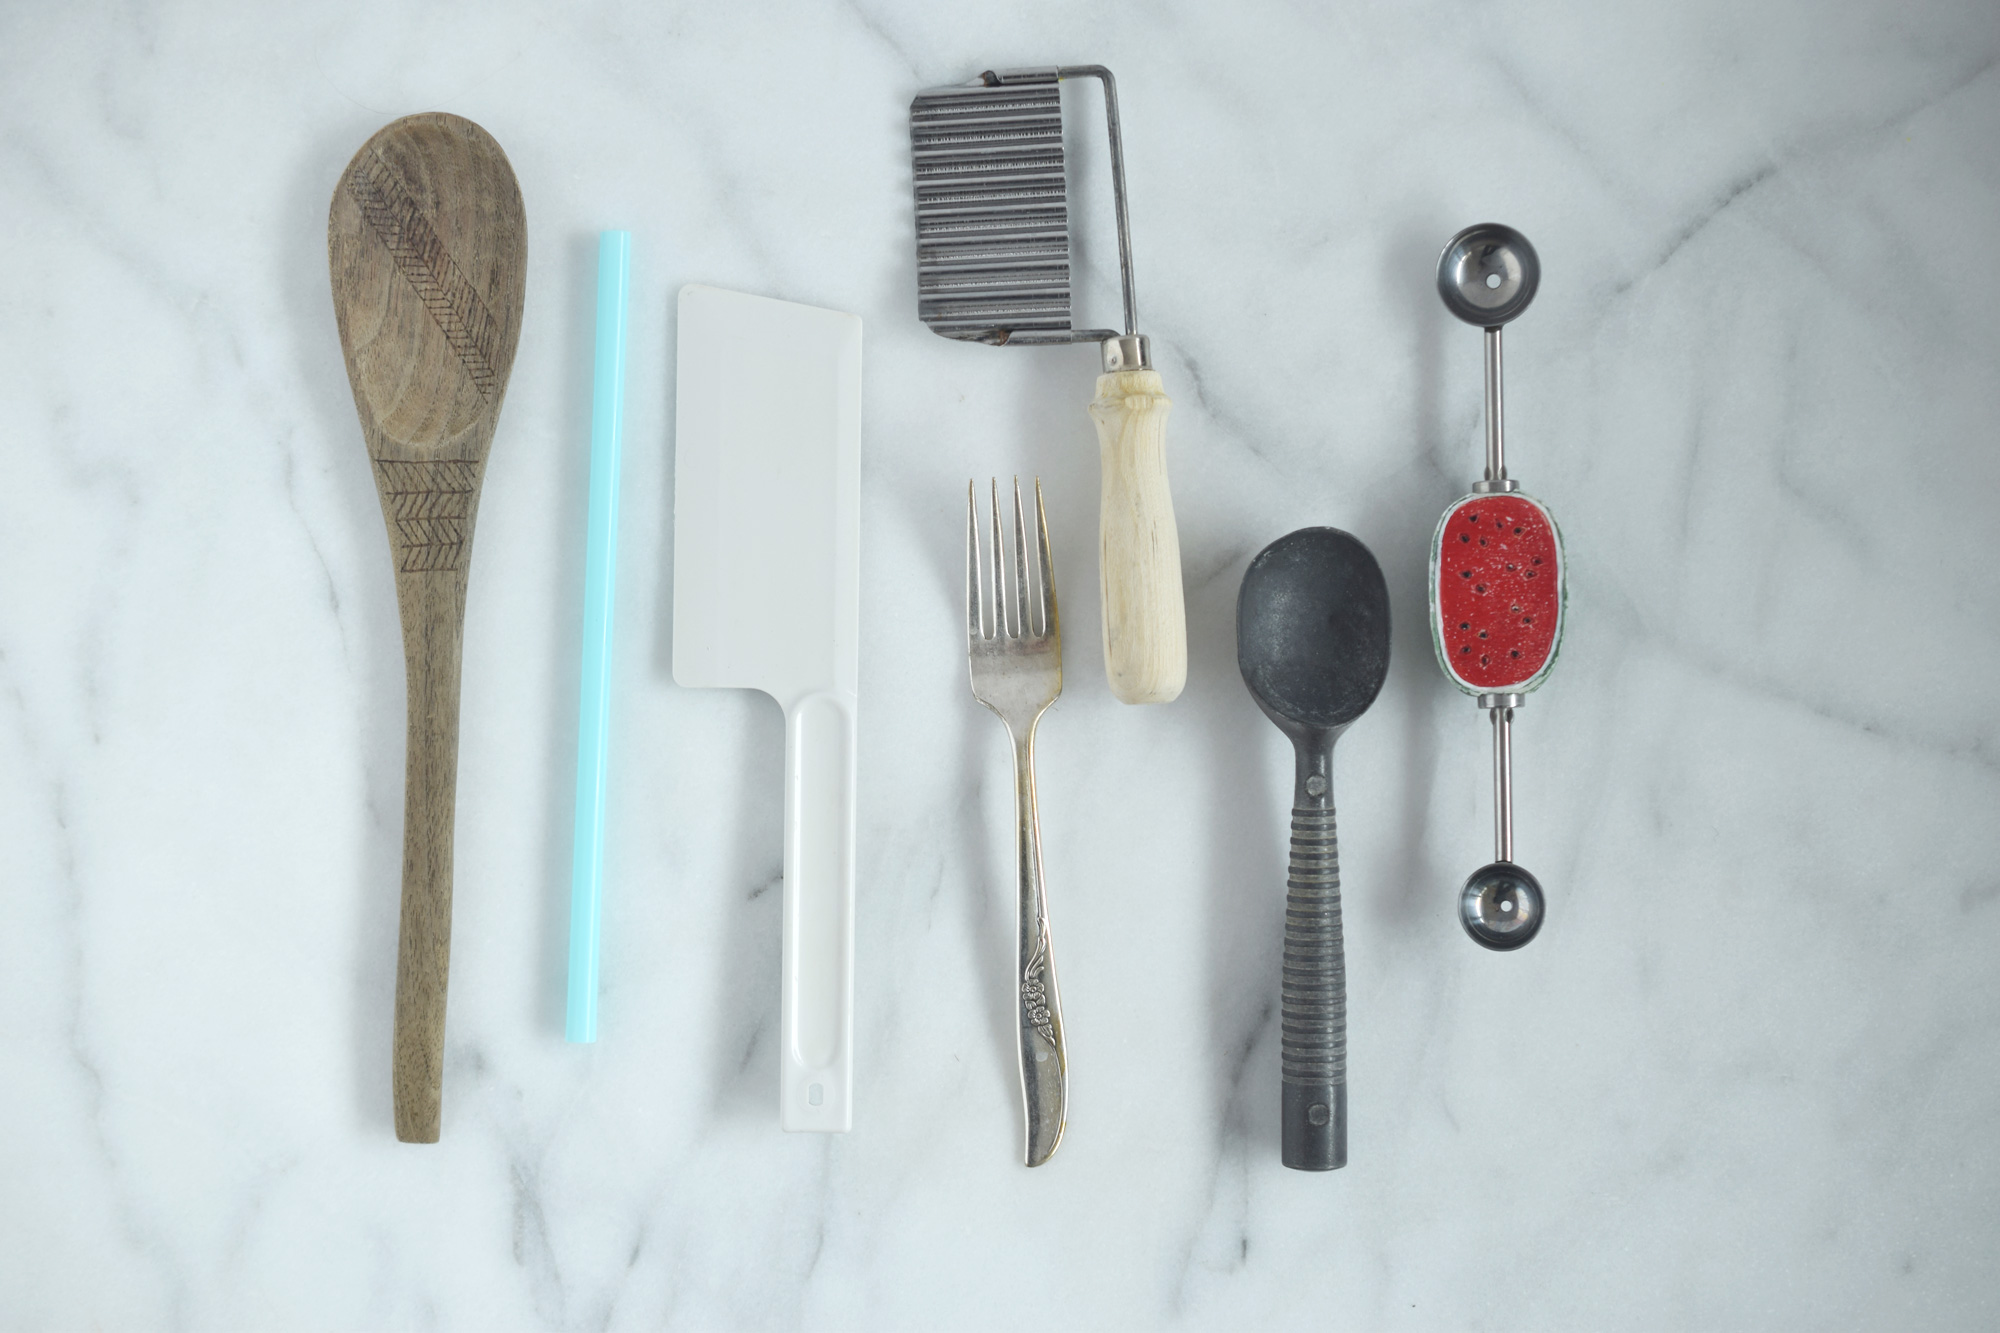 tools I used for playing with homemade playdough